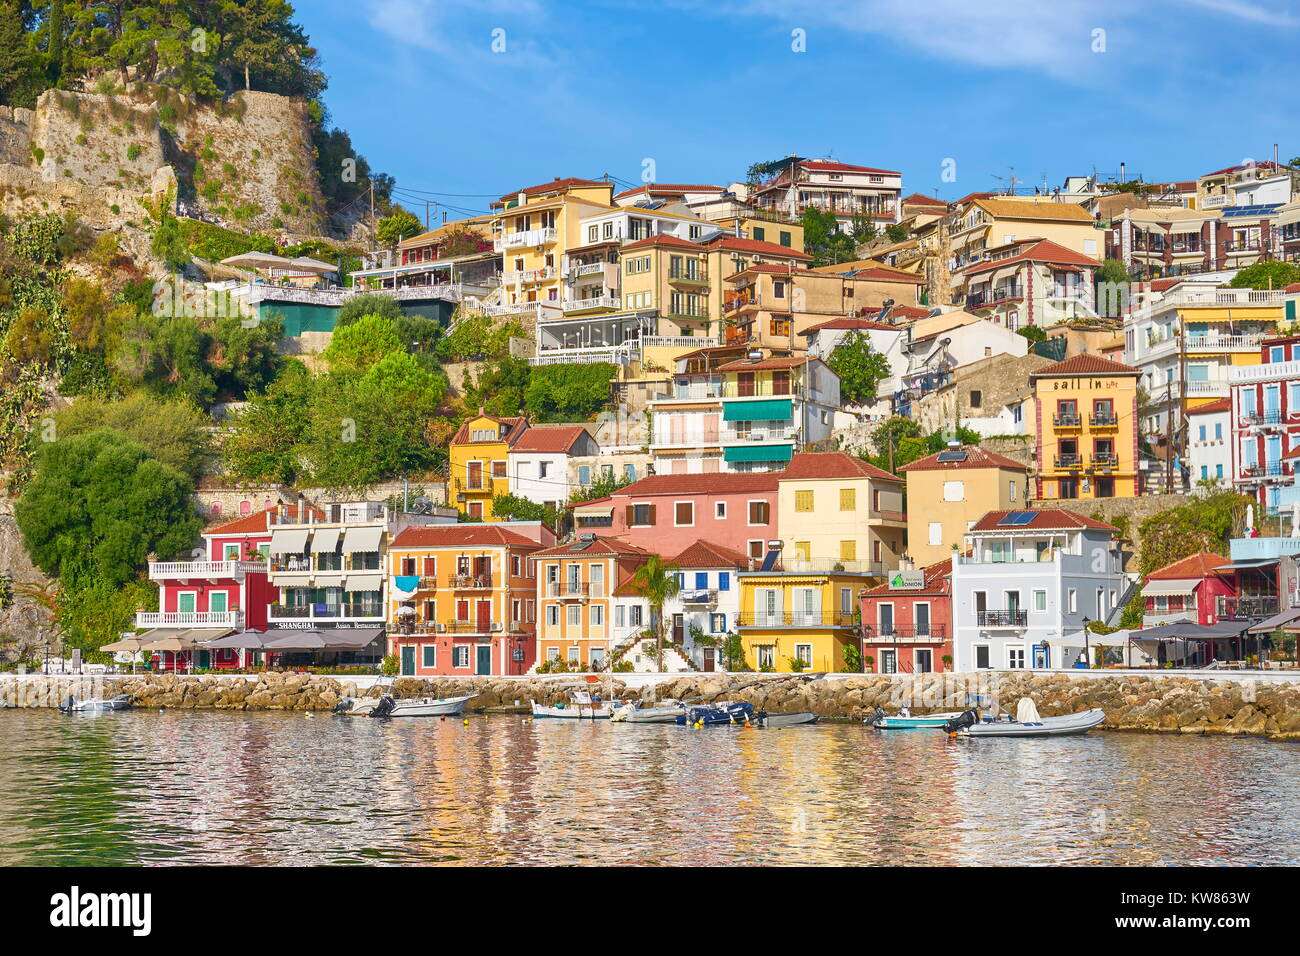 Colorful houses at Parga resort, Greece - Stock Image